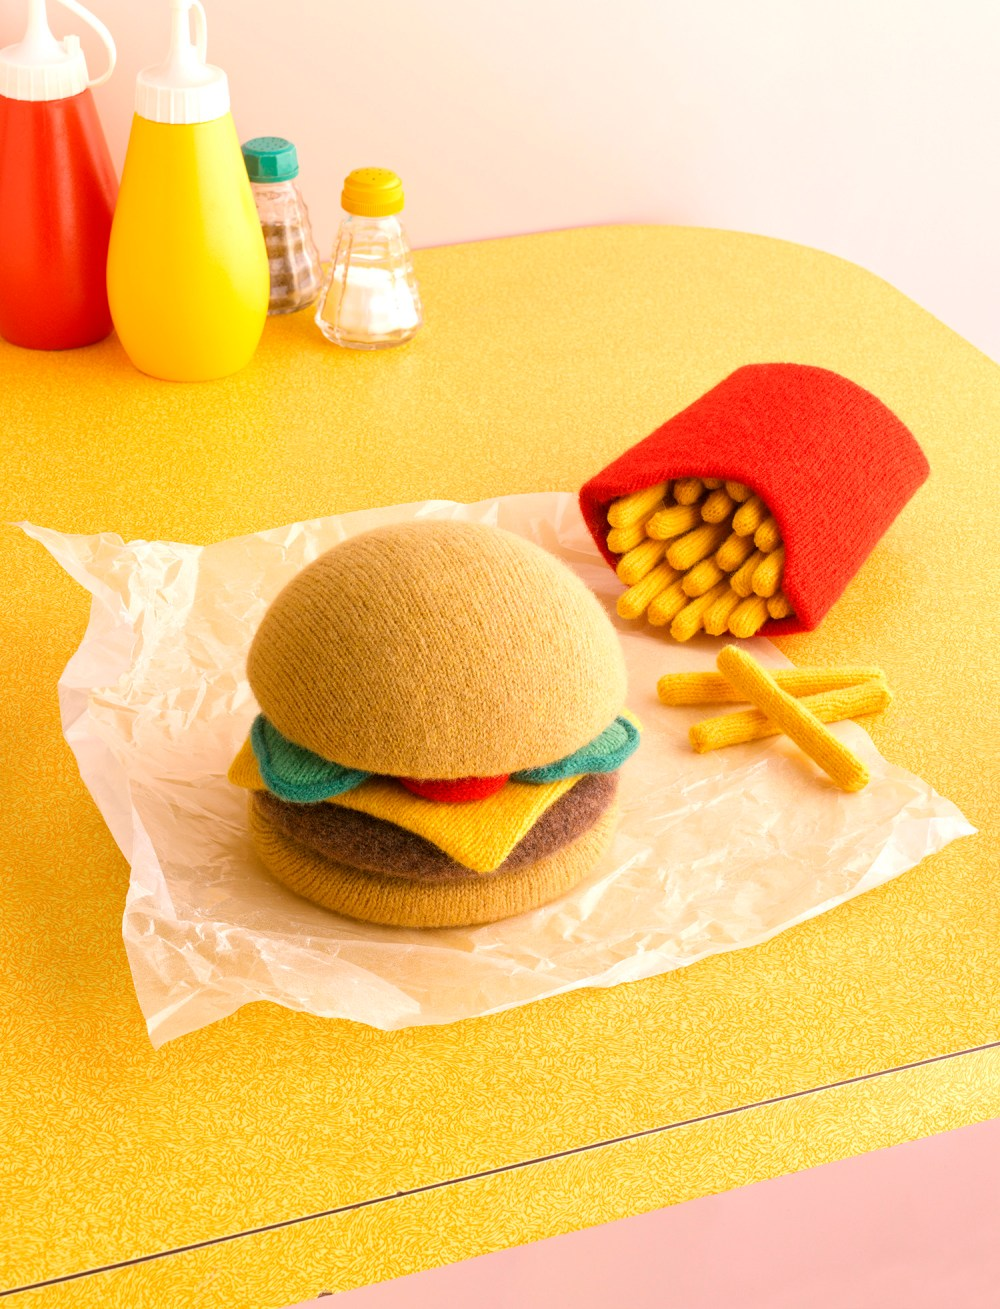 Knitted Food Knit Cheeseburger and Fries Ketchup Mustard Salt and Pepper